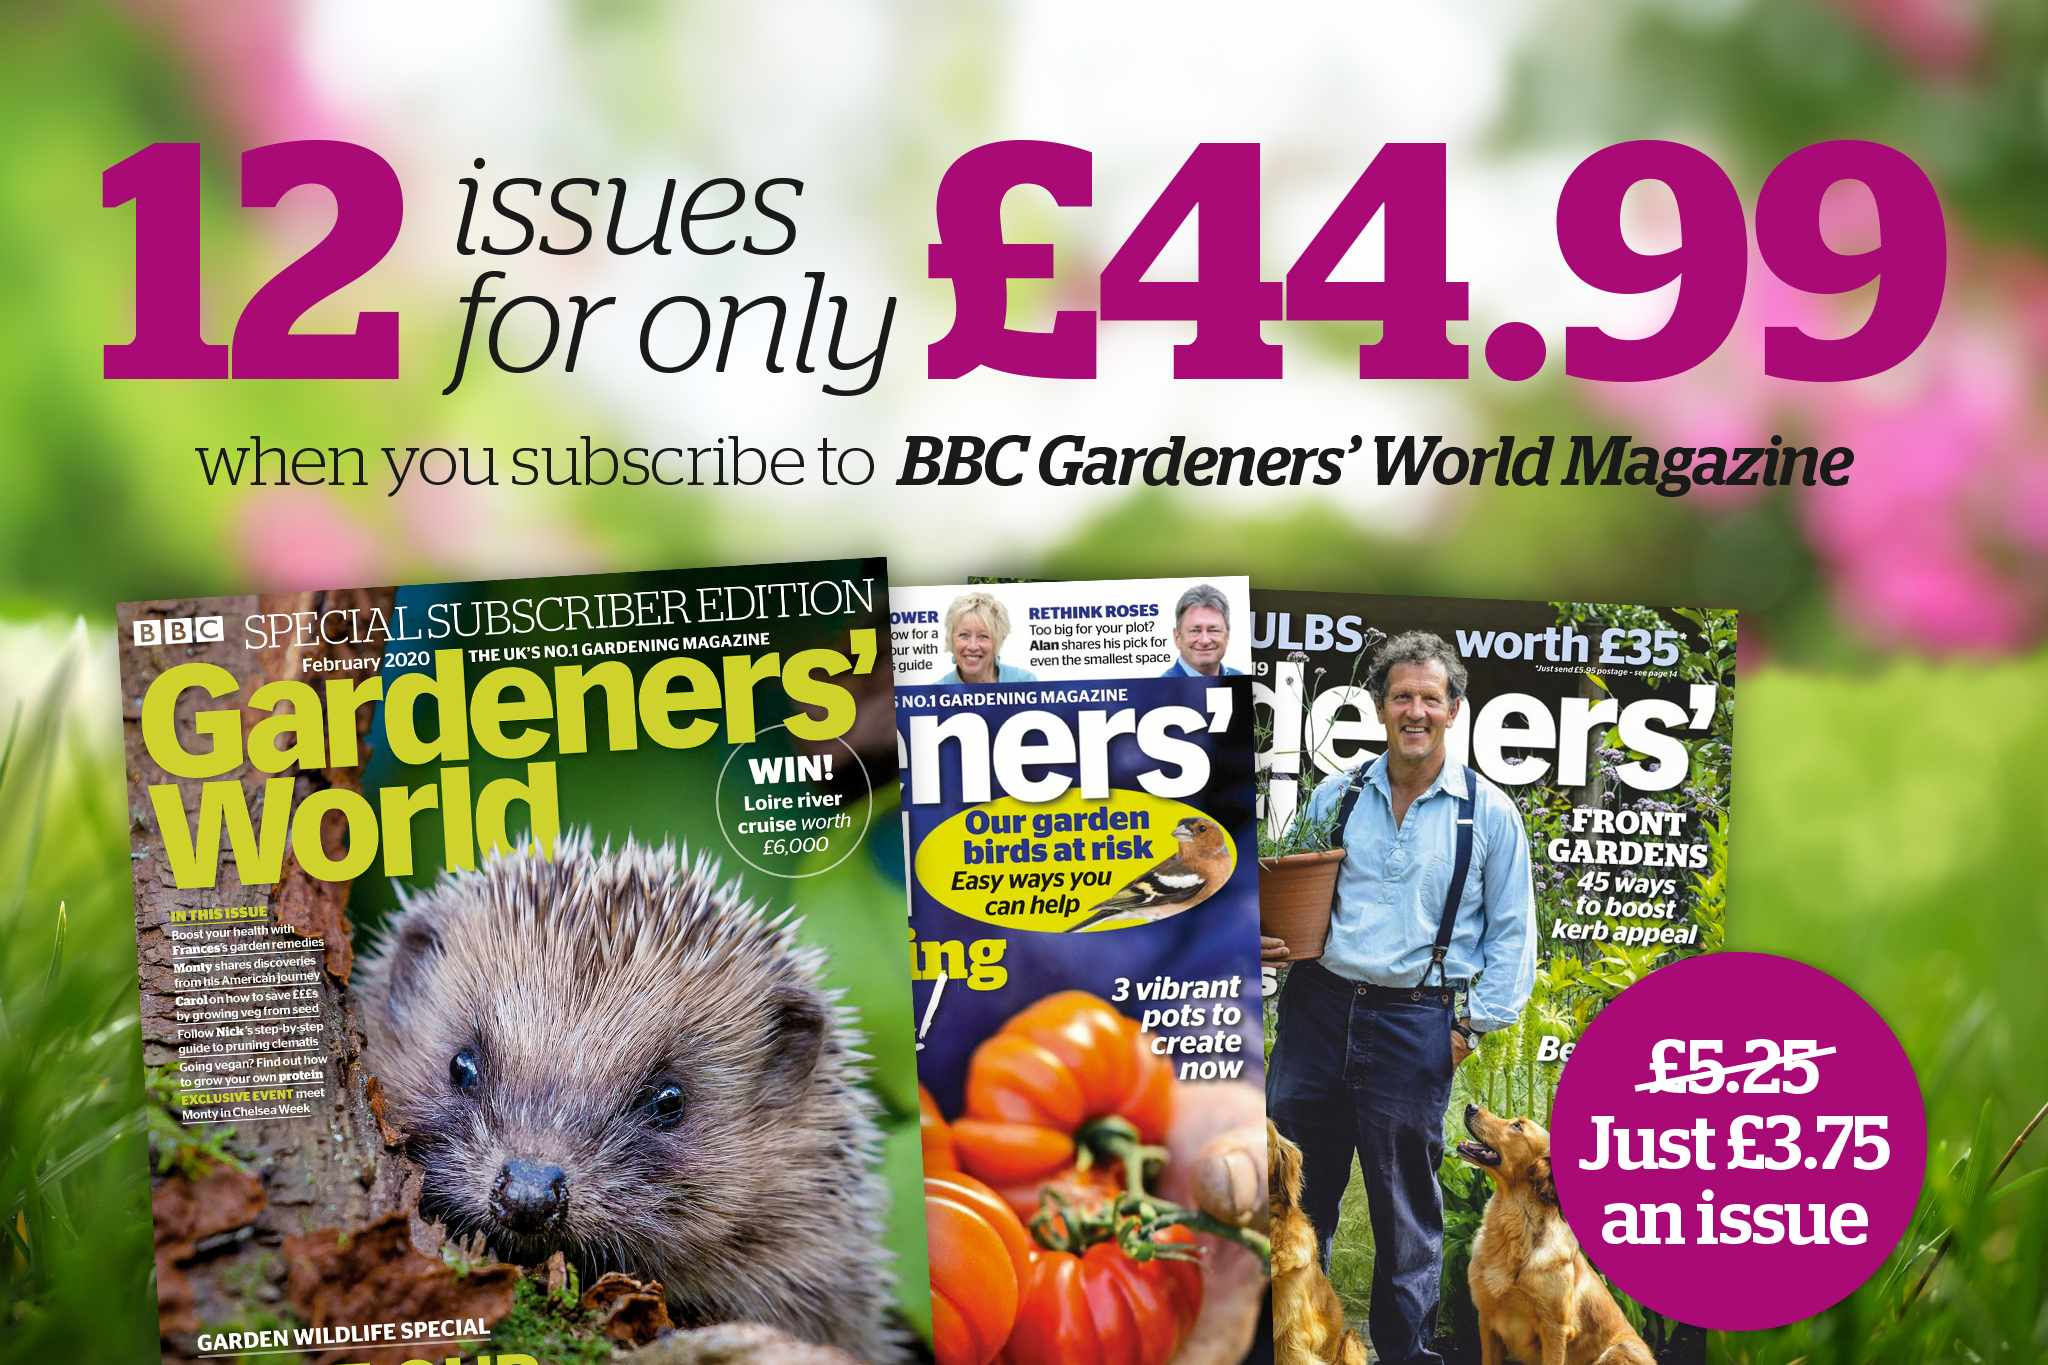 Get 12 issues of BBC Gardeners' World Magazine for £44.99